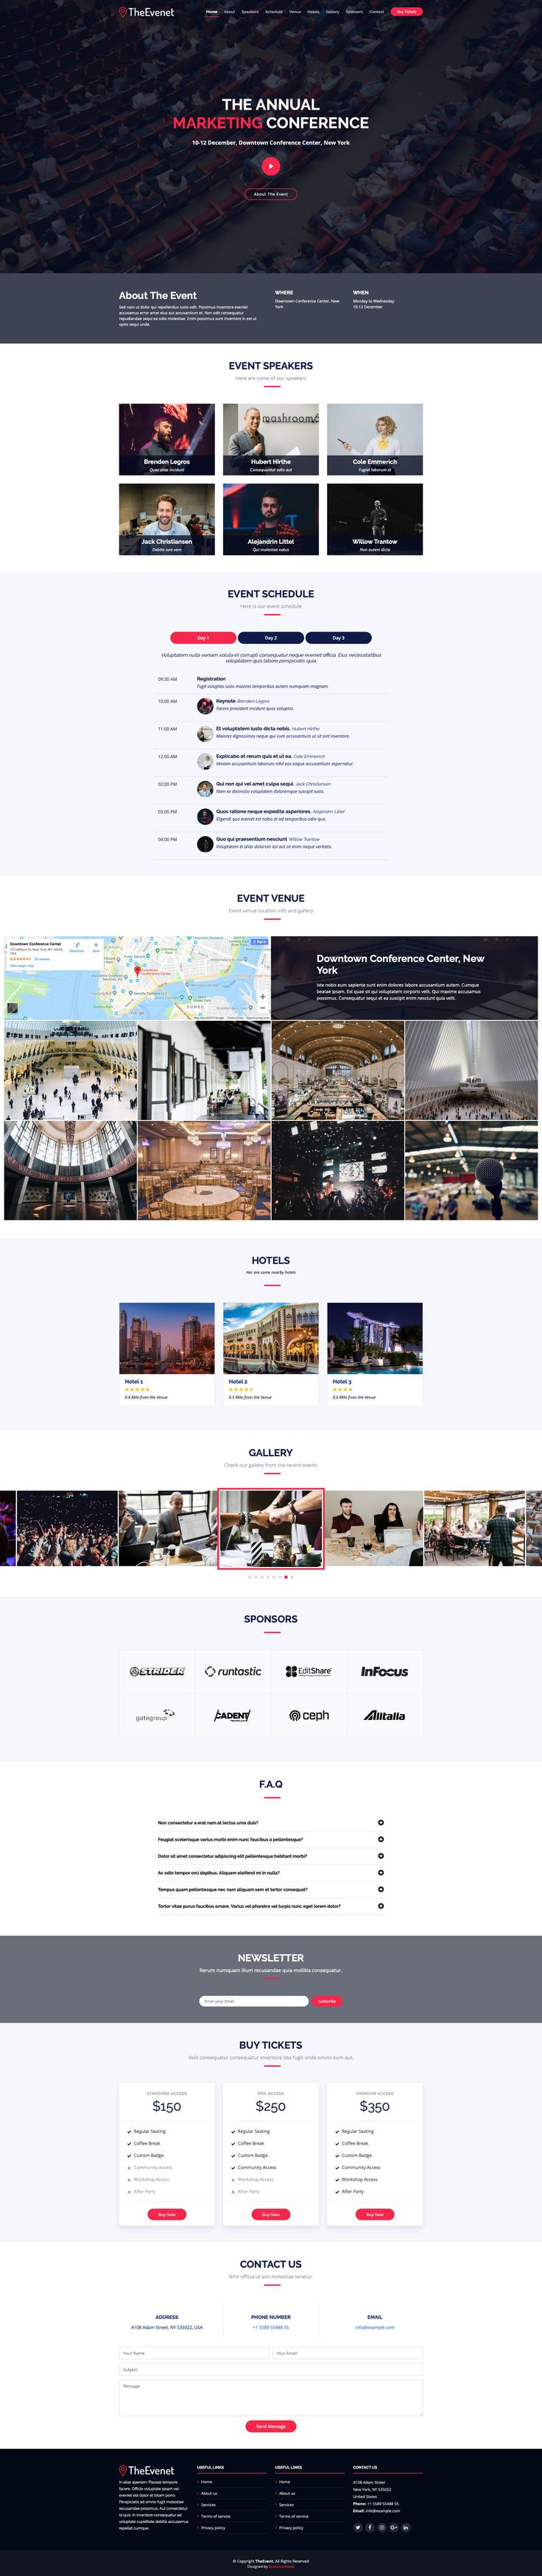 TheEvent Free responsive HTML5 Bootstrap Event template